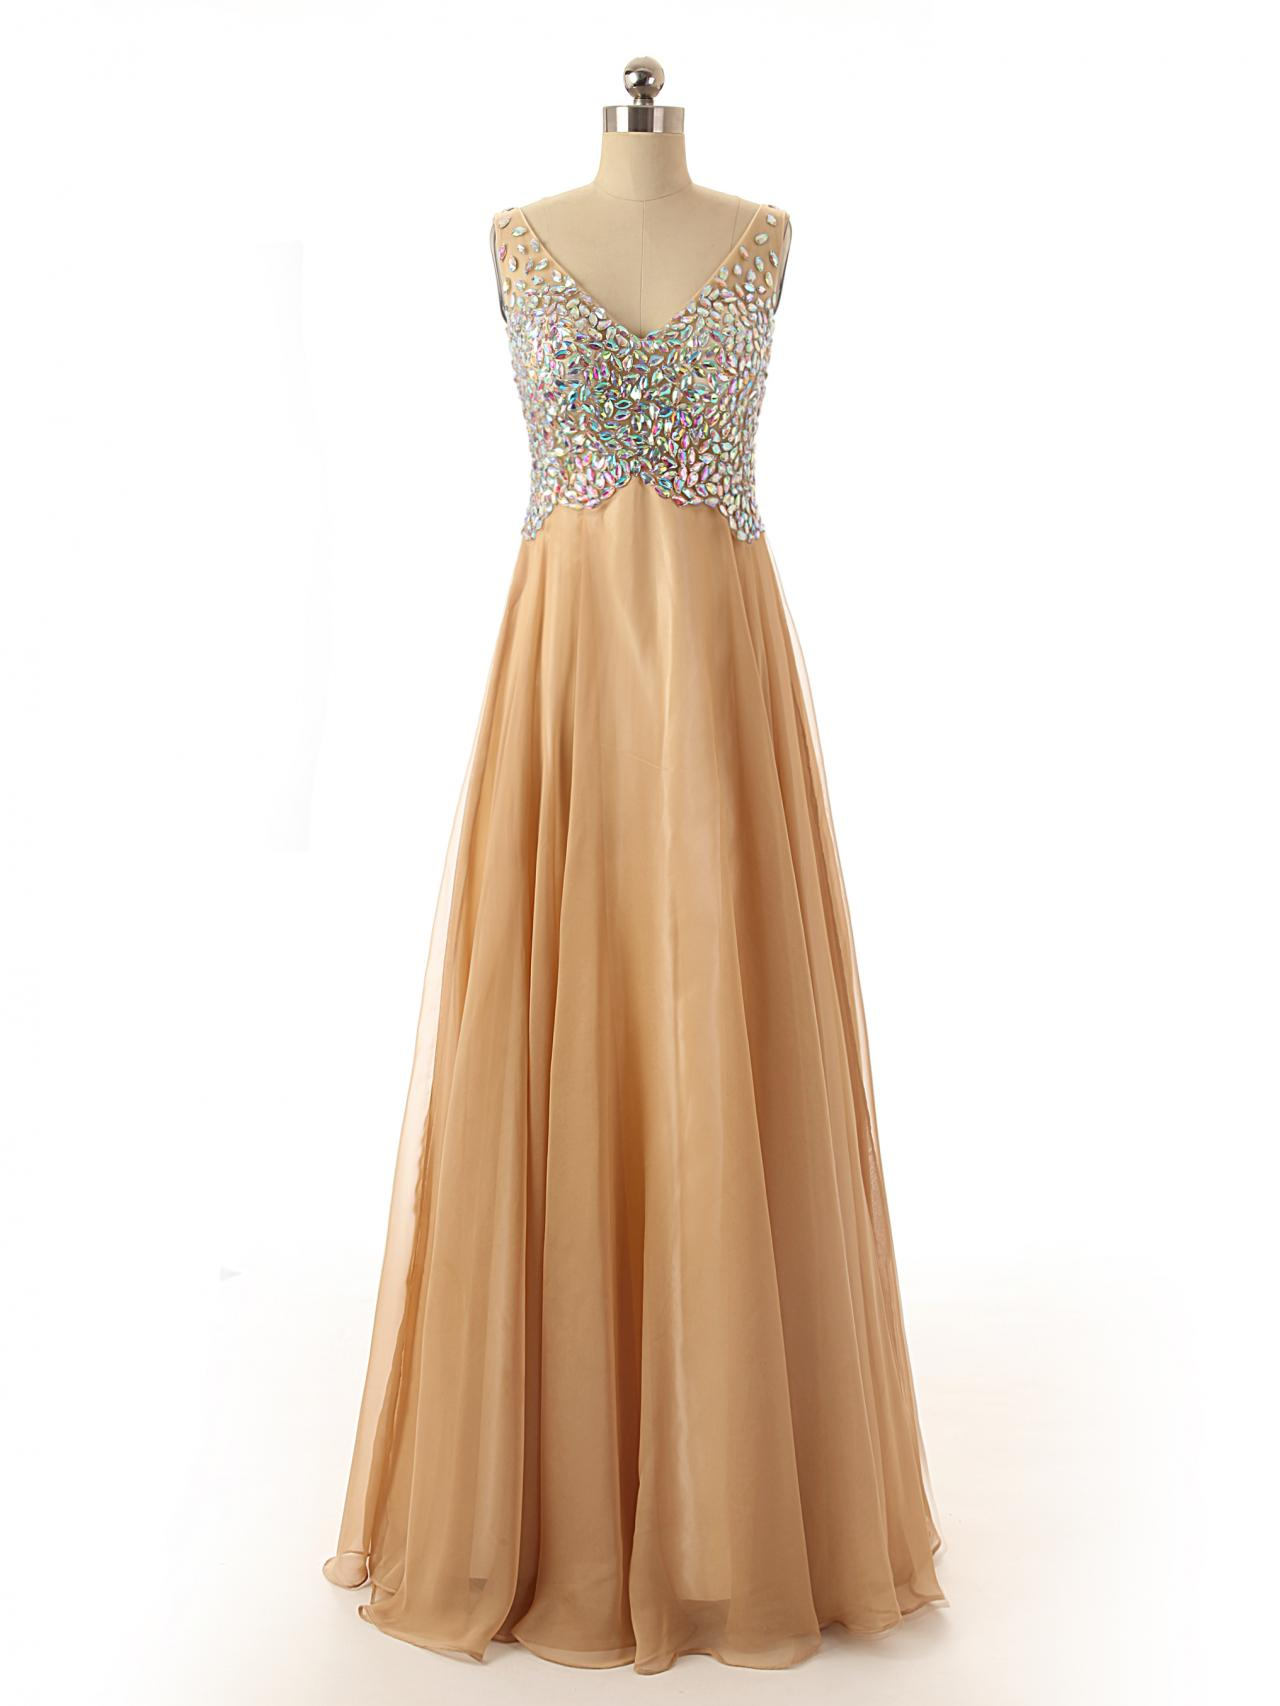 A51 V Neck Sleeveless Champagne Long Tulle Evening Gowns,Backless Real Photos Bridesmaid Dress